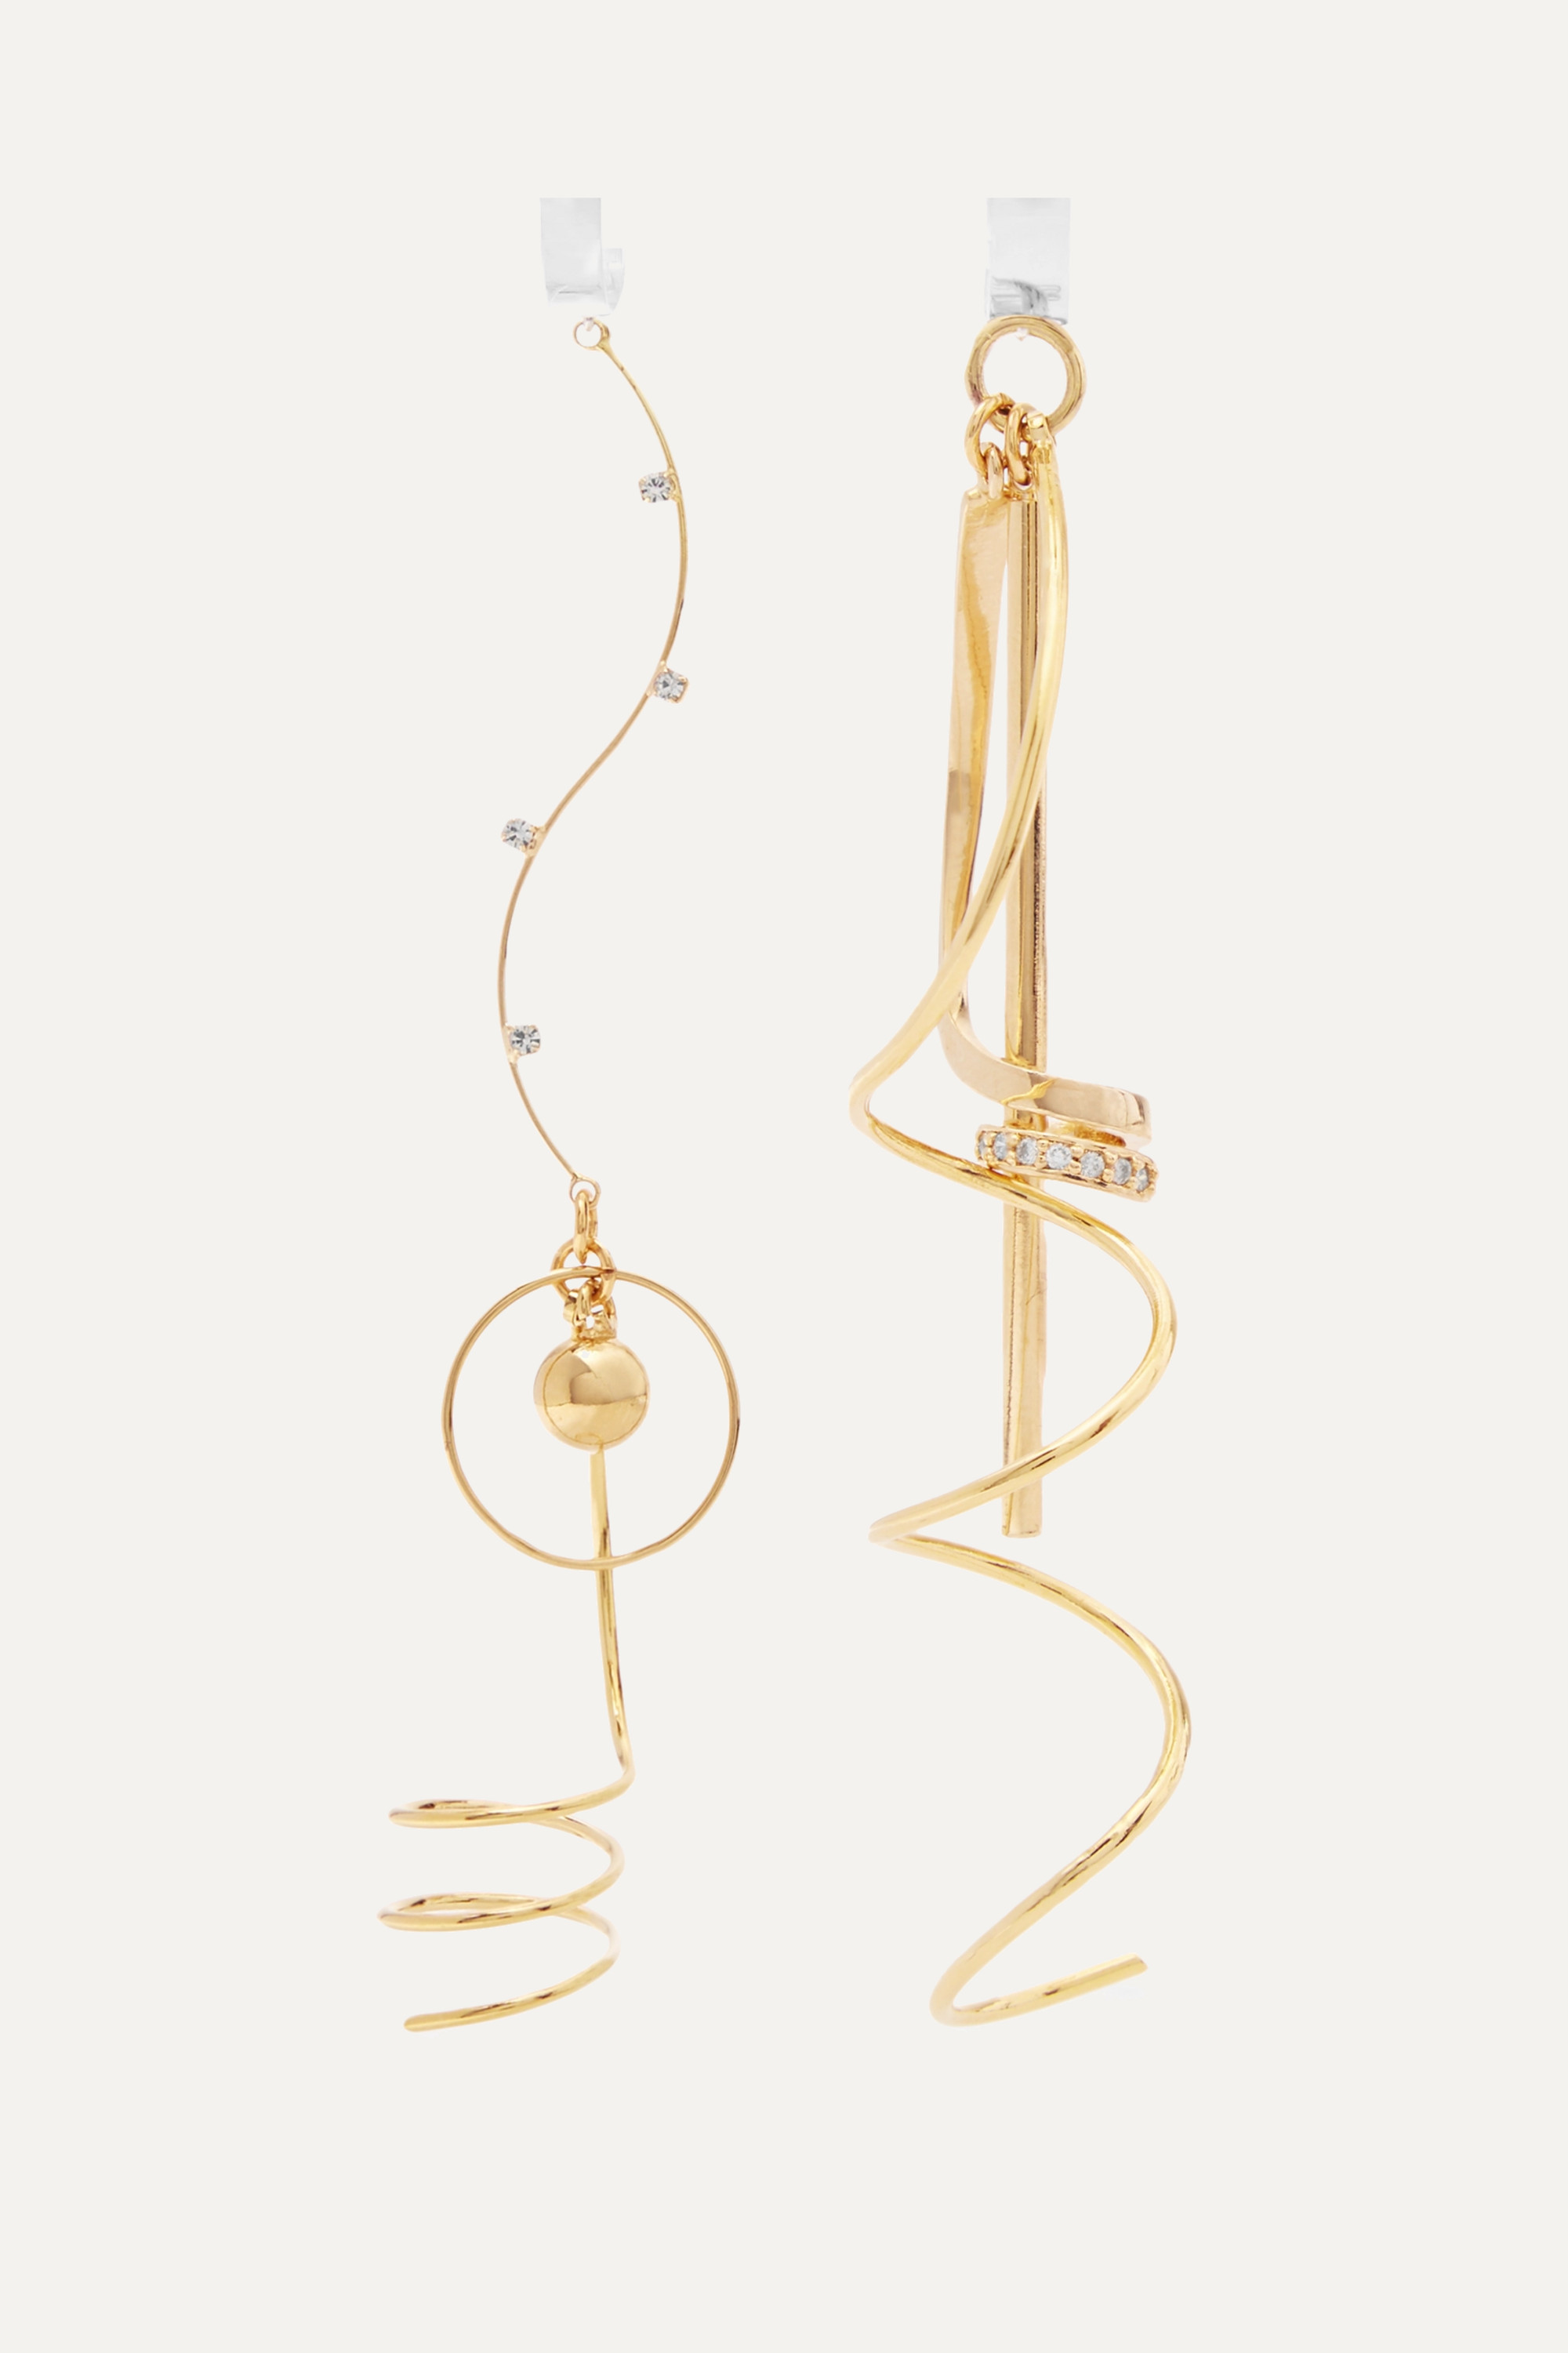 Mounser Corkscrew gold and rhodium-plated crystal earrings